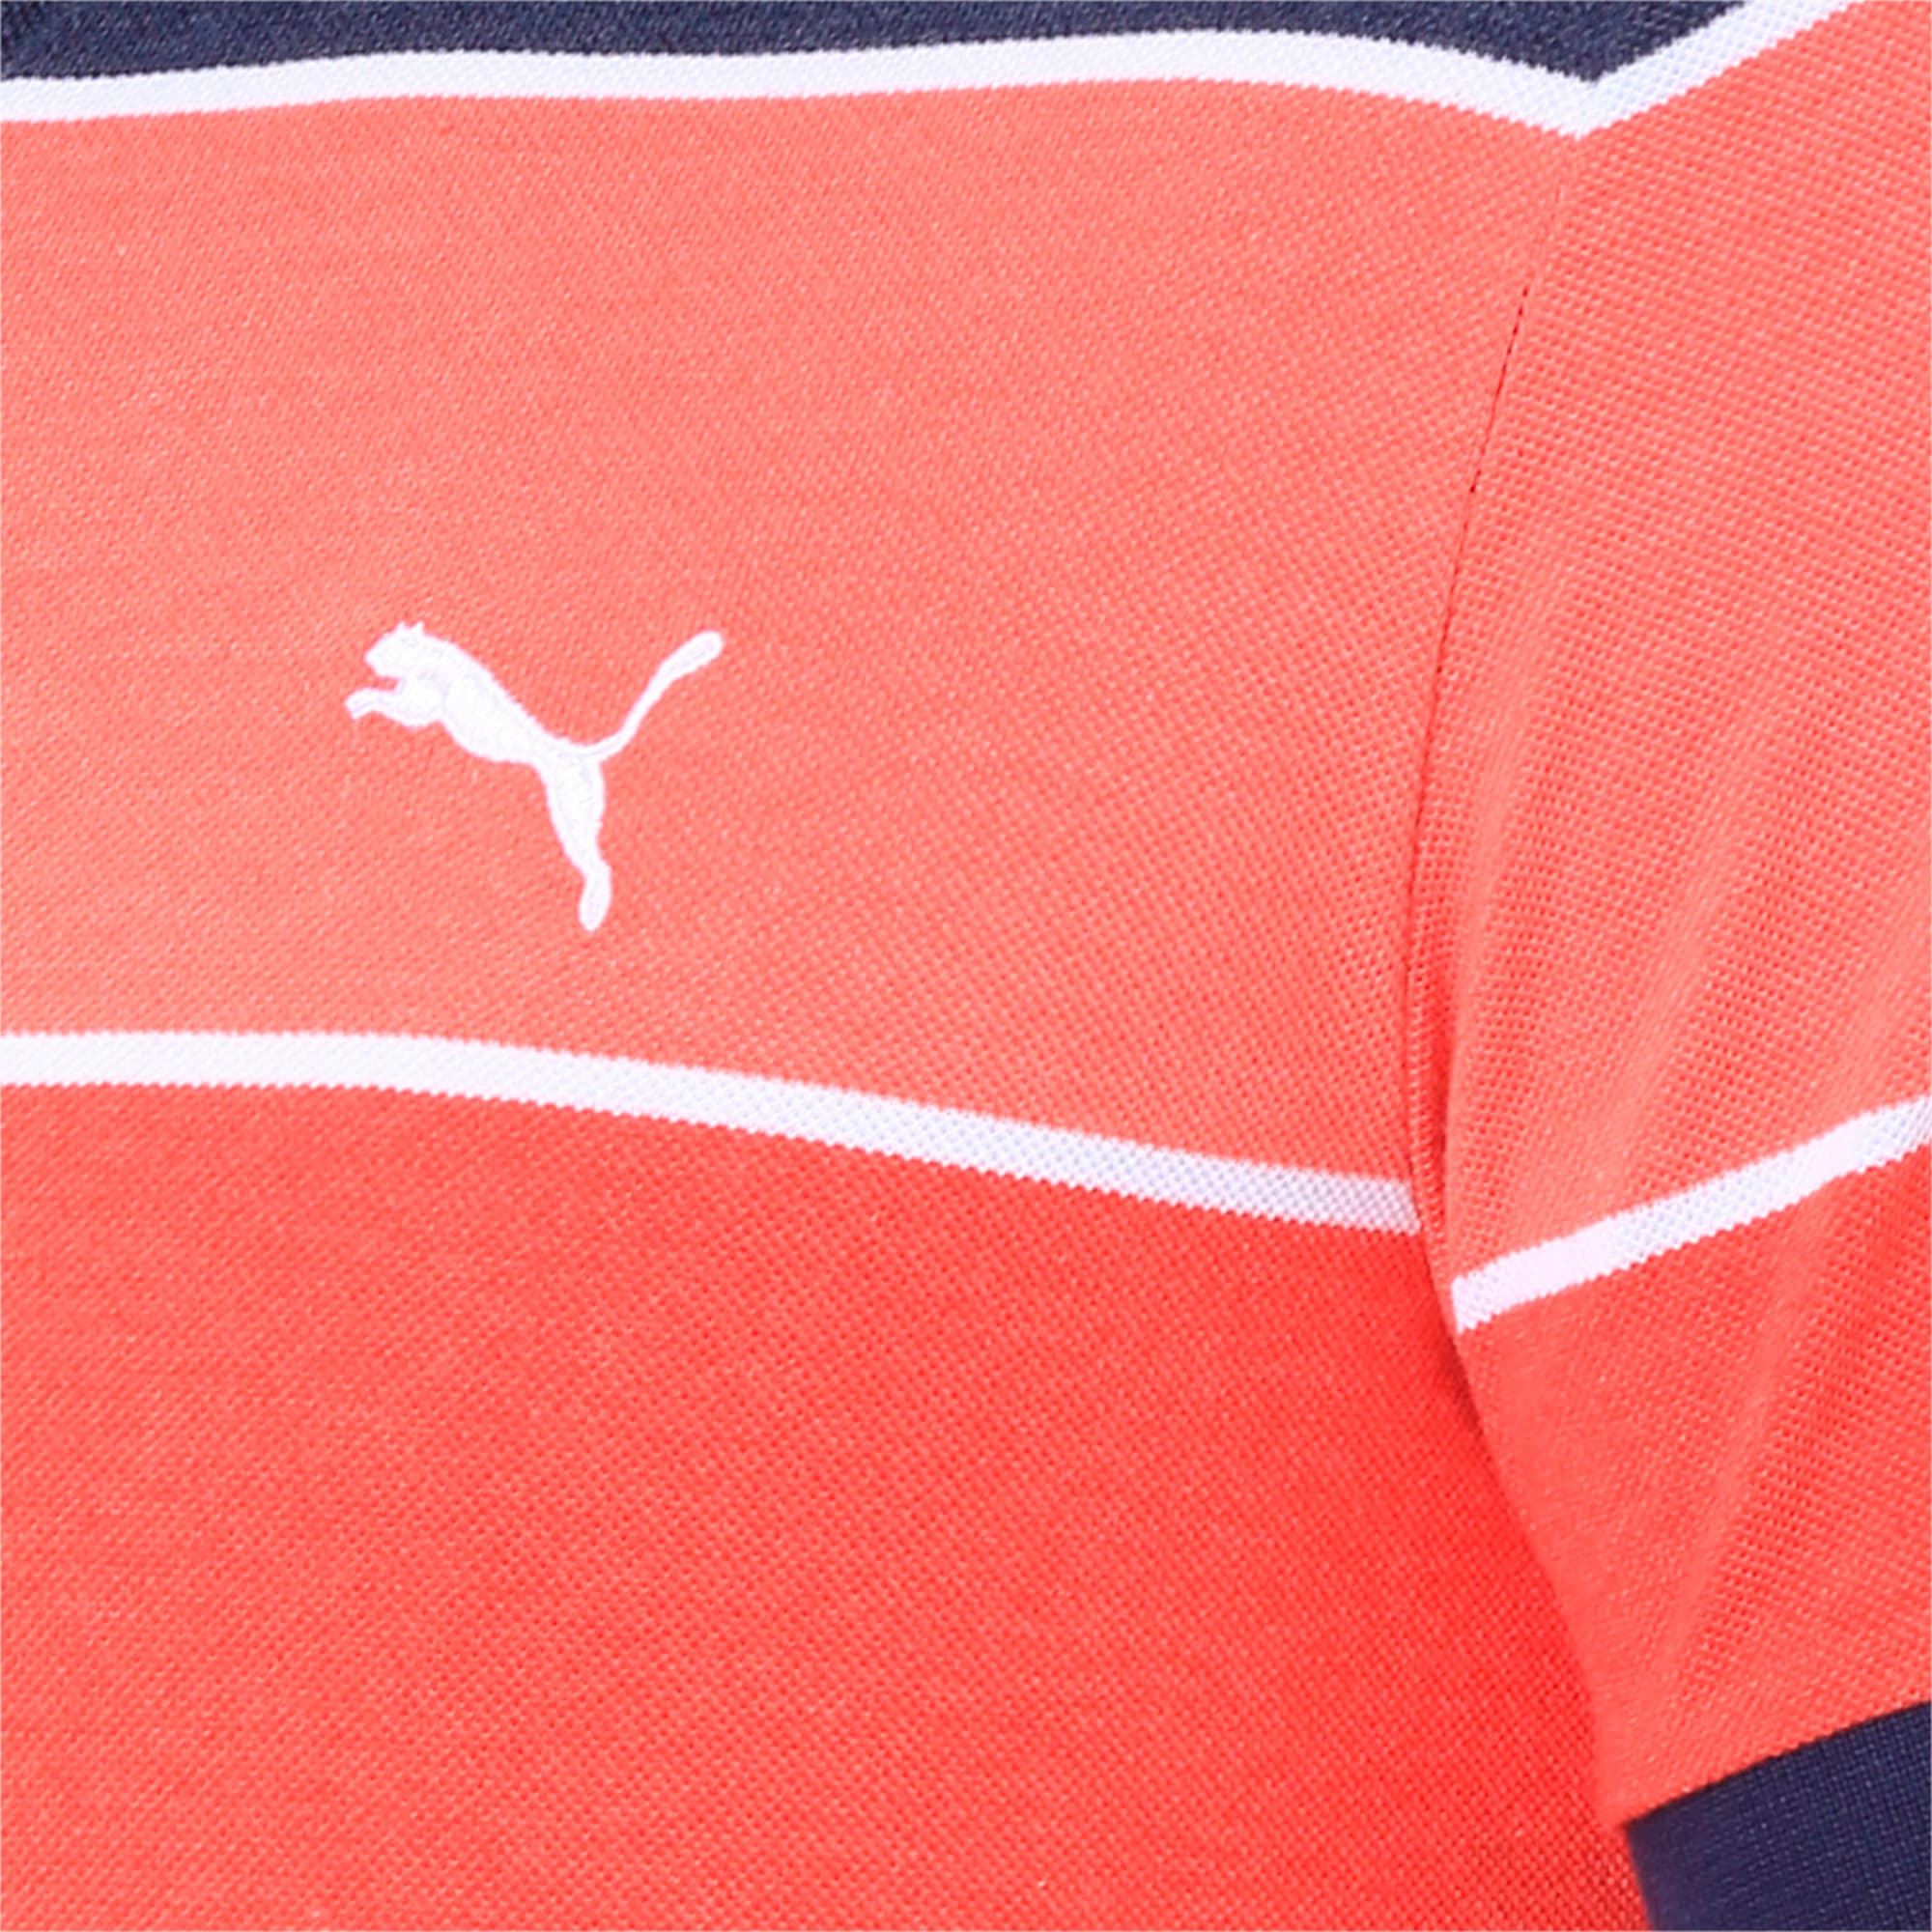 Thumbnail 6 of COLOR BLOCKED POLO M, Flame Scarlet Heather, medium-IND